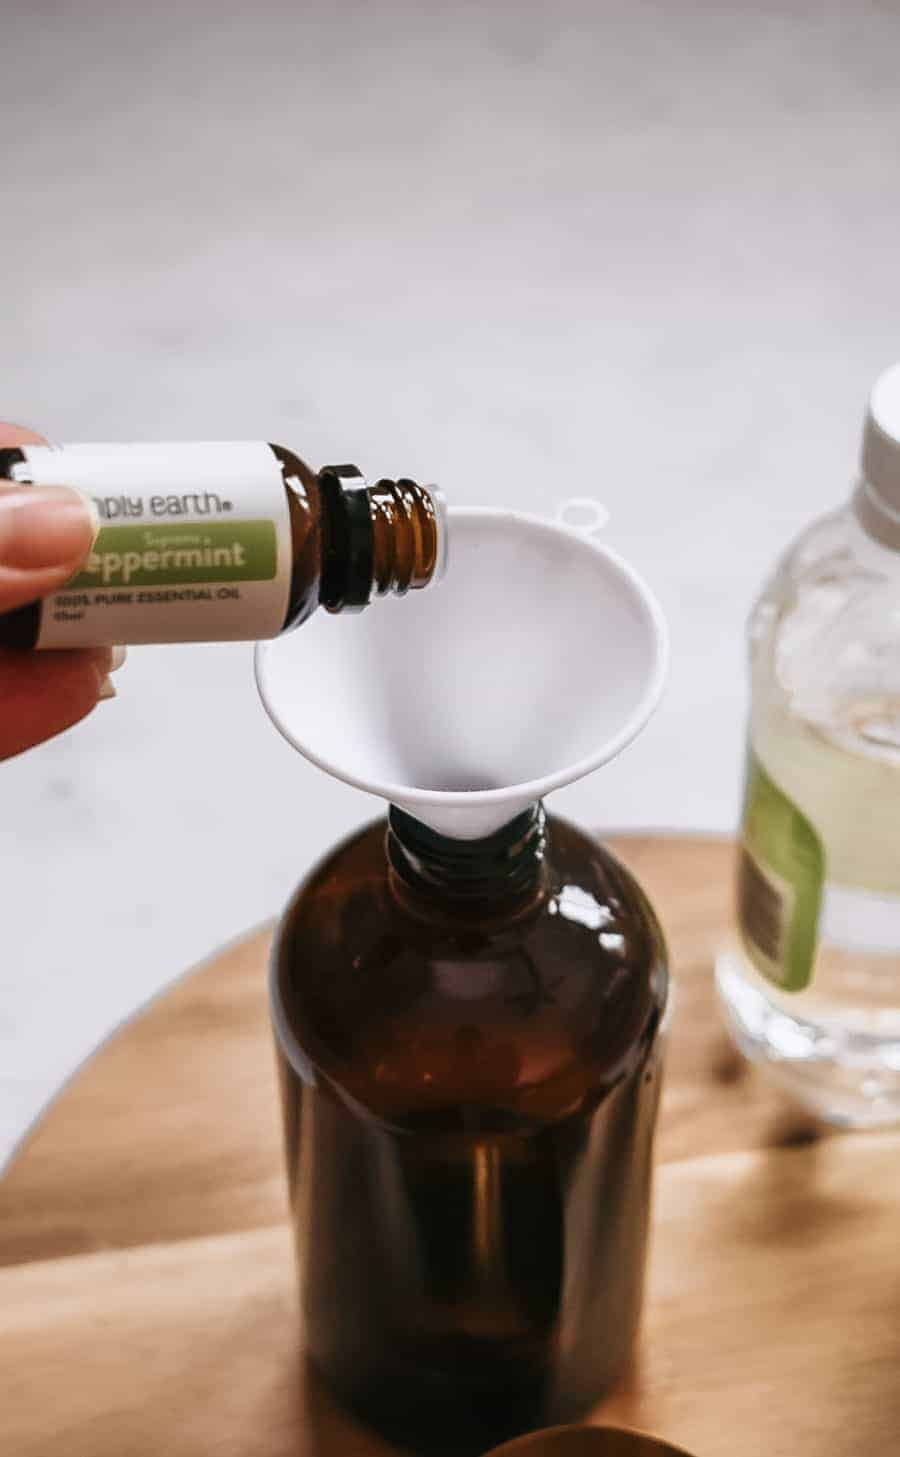 Person pouring peppermint essential oil into brown glass bottle